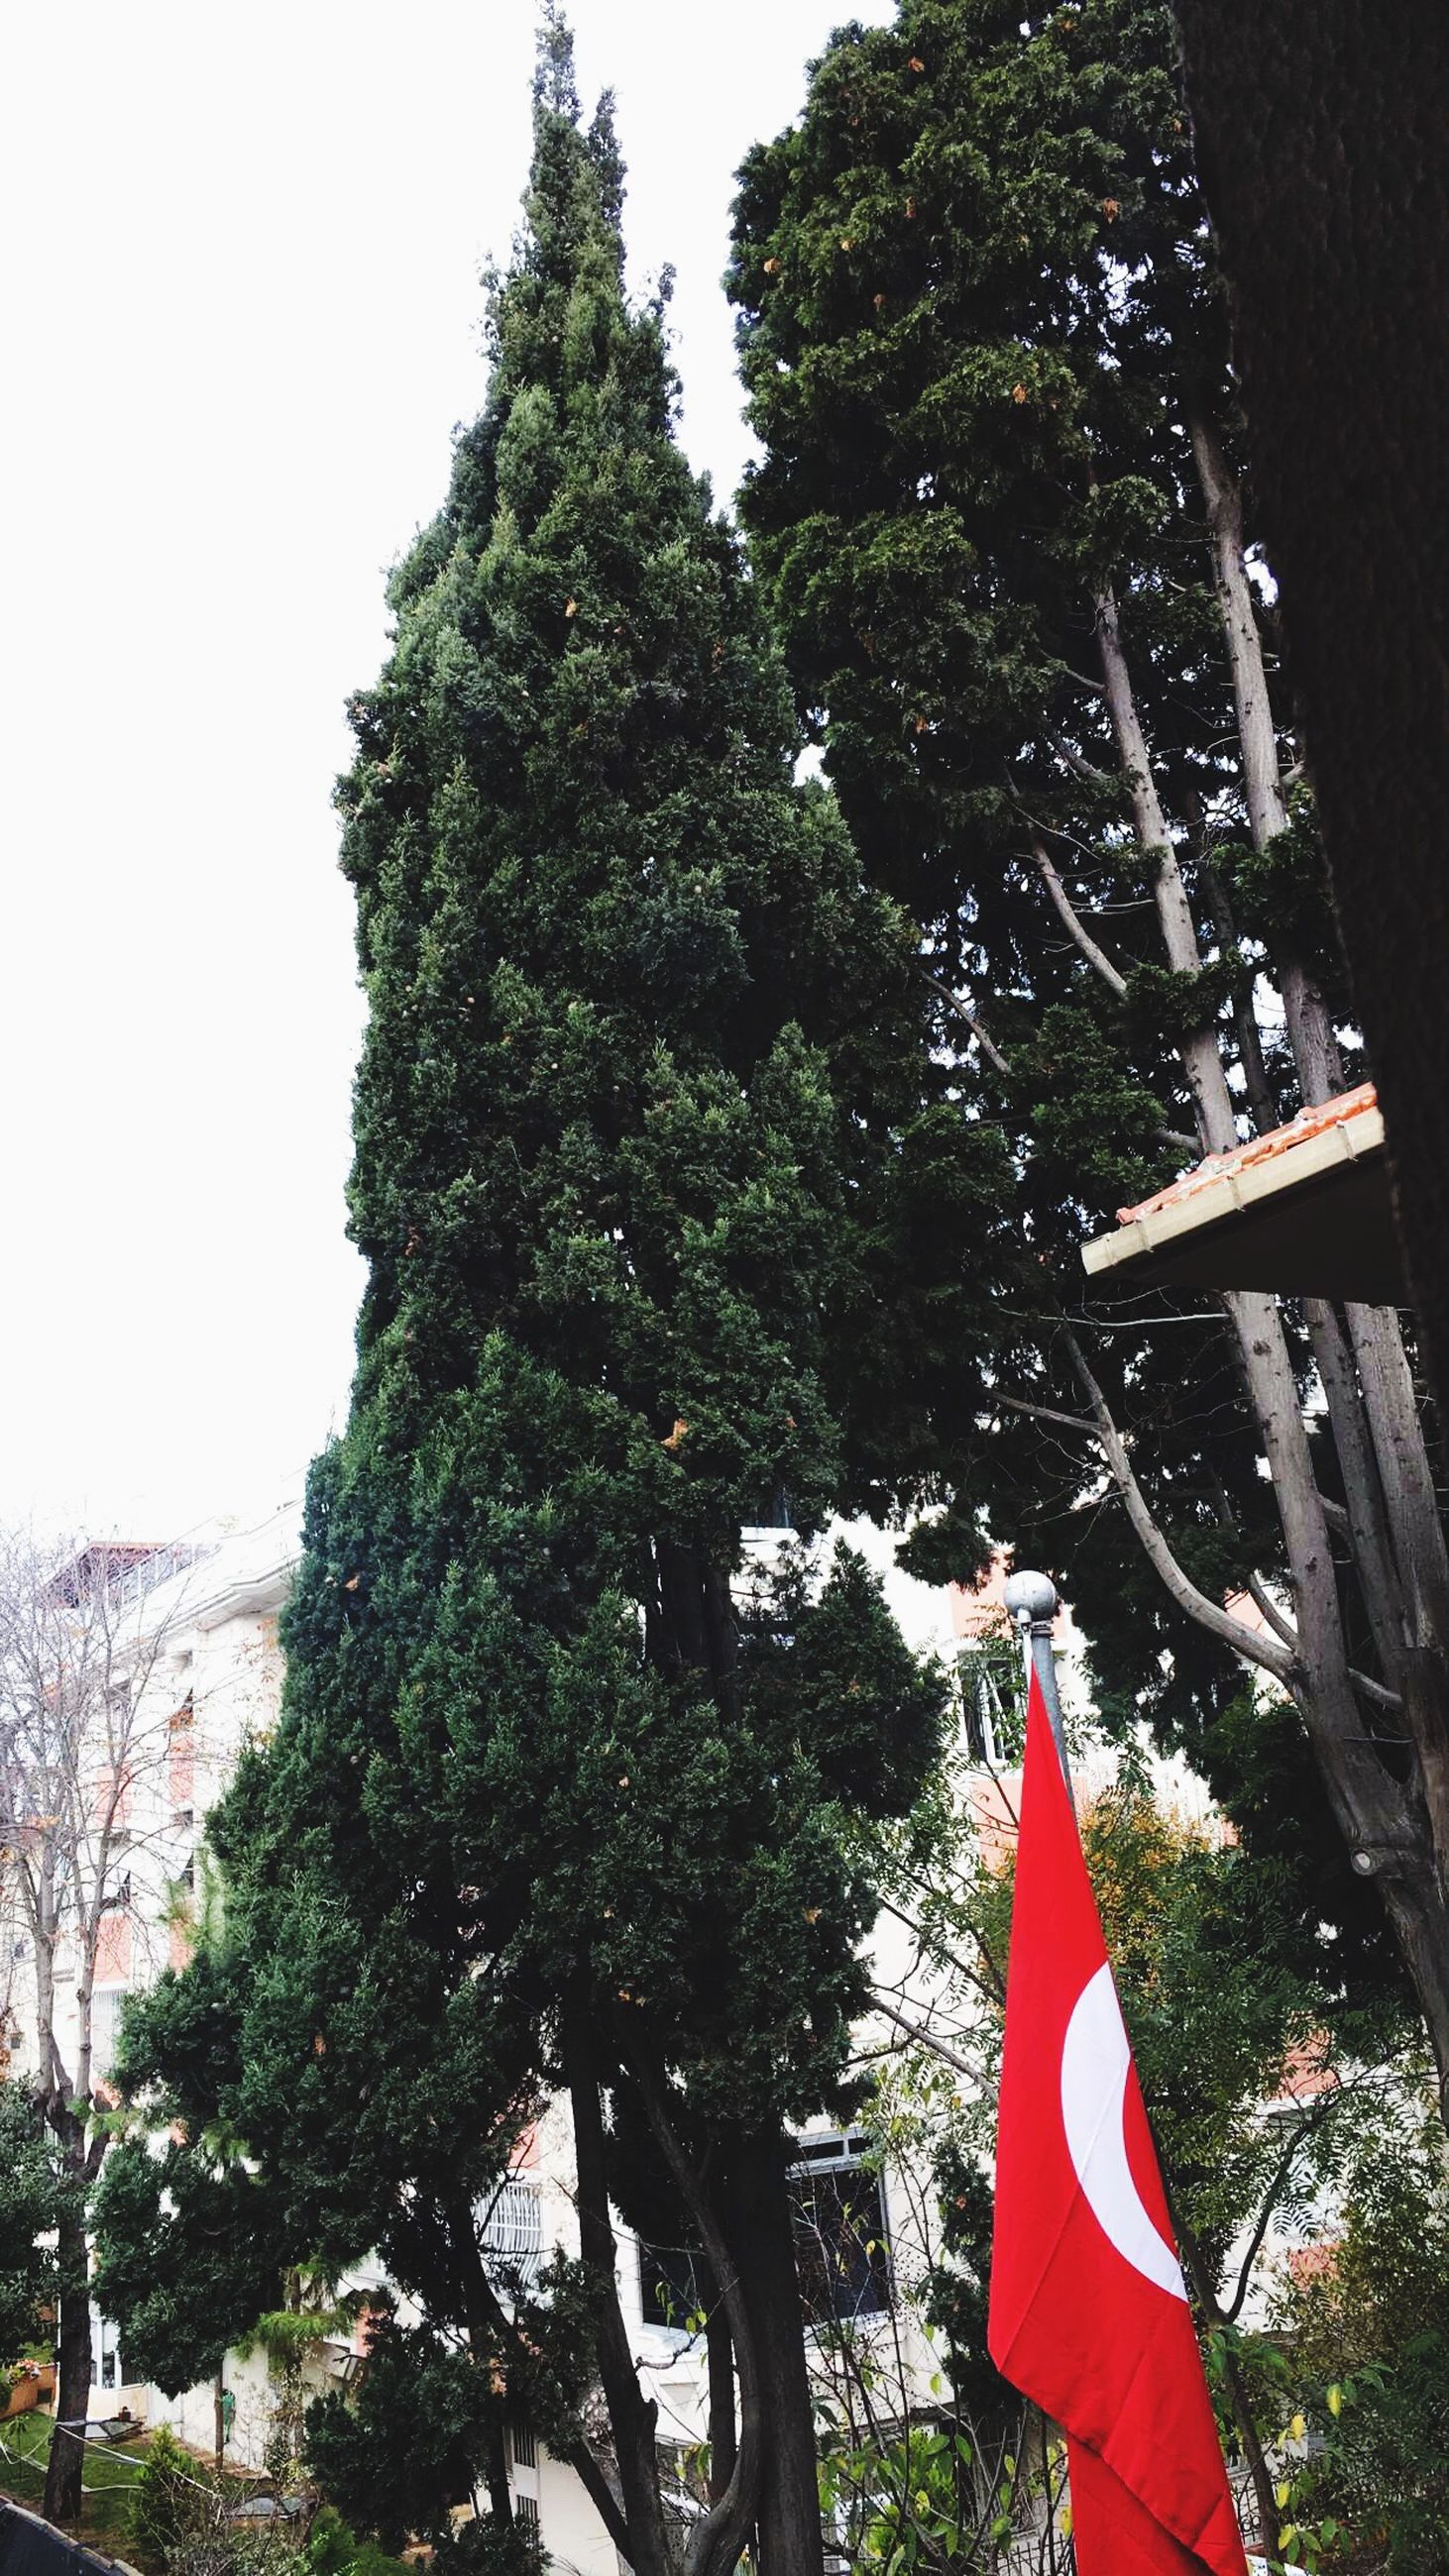 tree, christmas, low angle view, celebration, christmas decoration, men, real people, outdoors, holiday - event, one person, sky, day, adults only, people, adult, nature, human body part